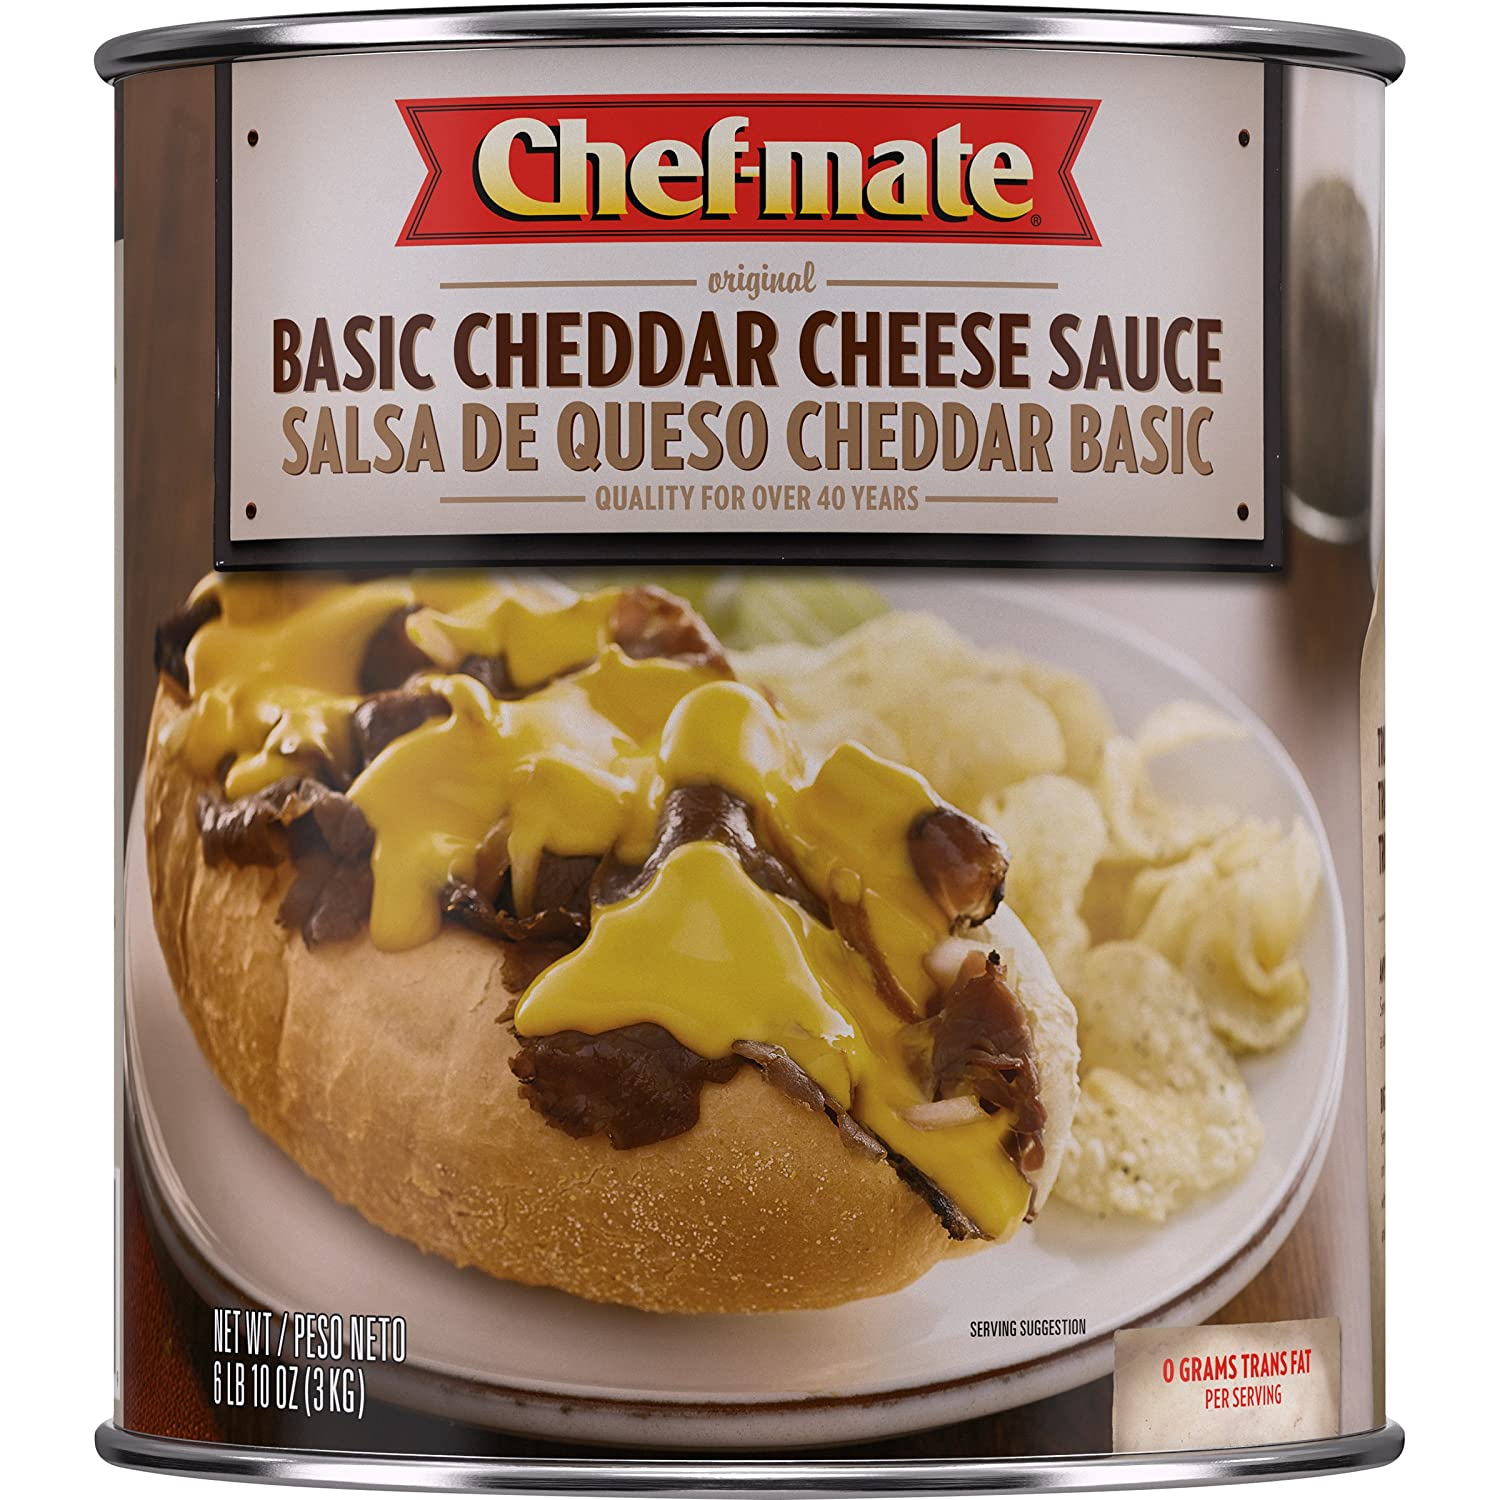 Amazon.com: Chef-mate Original Basic Cheddar Cheese Sauce, Great for Macaroni and Cheese, 6 lb 10 oz, 10 Can Bulk: Prime Pantry